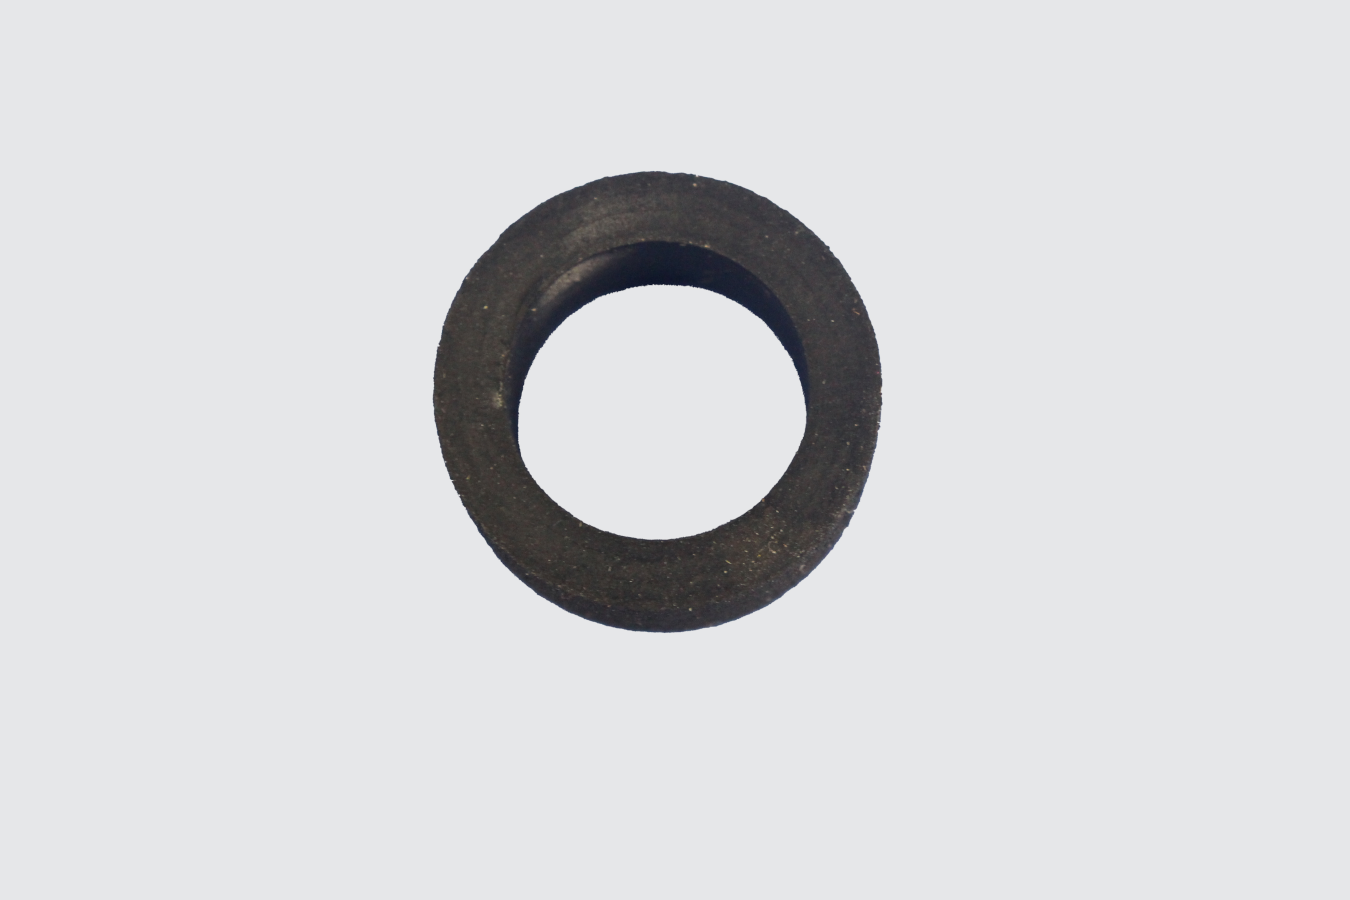 35324649 - GASKET, SIGHT TUBE RUBBER